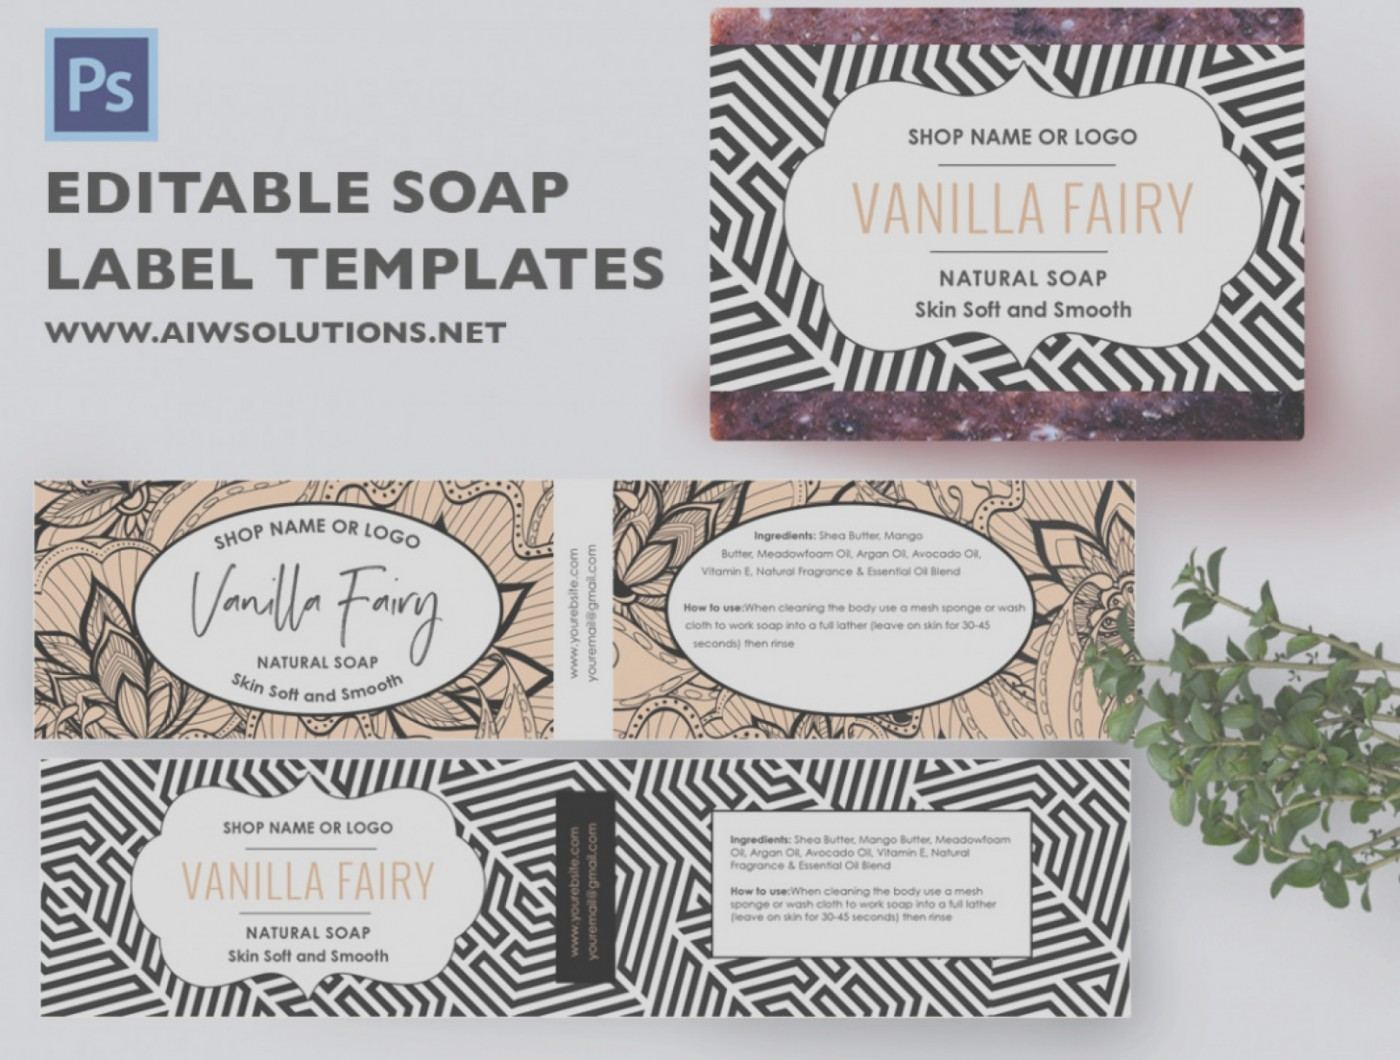 Free Online Soap Label Templates